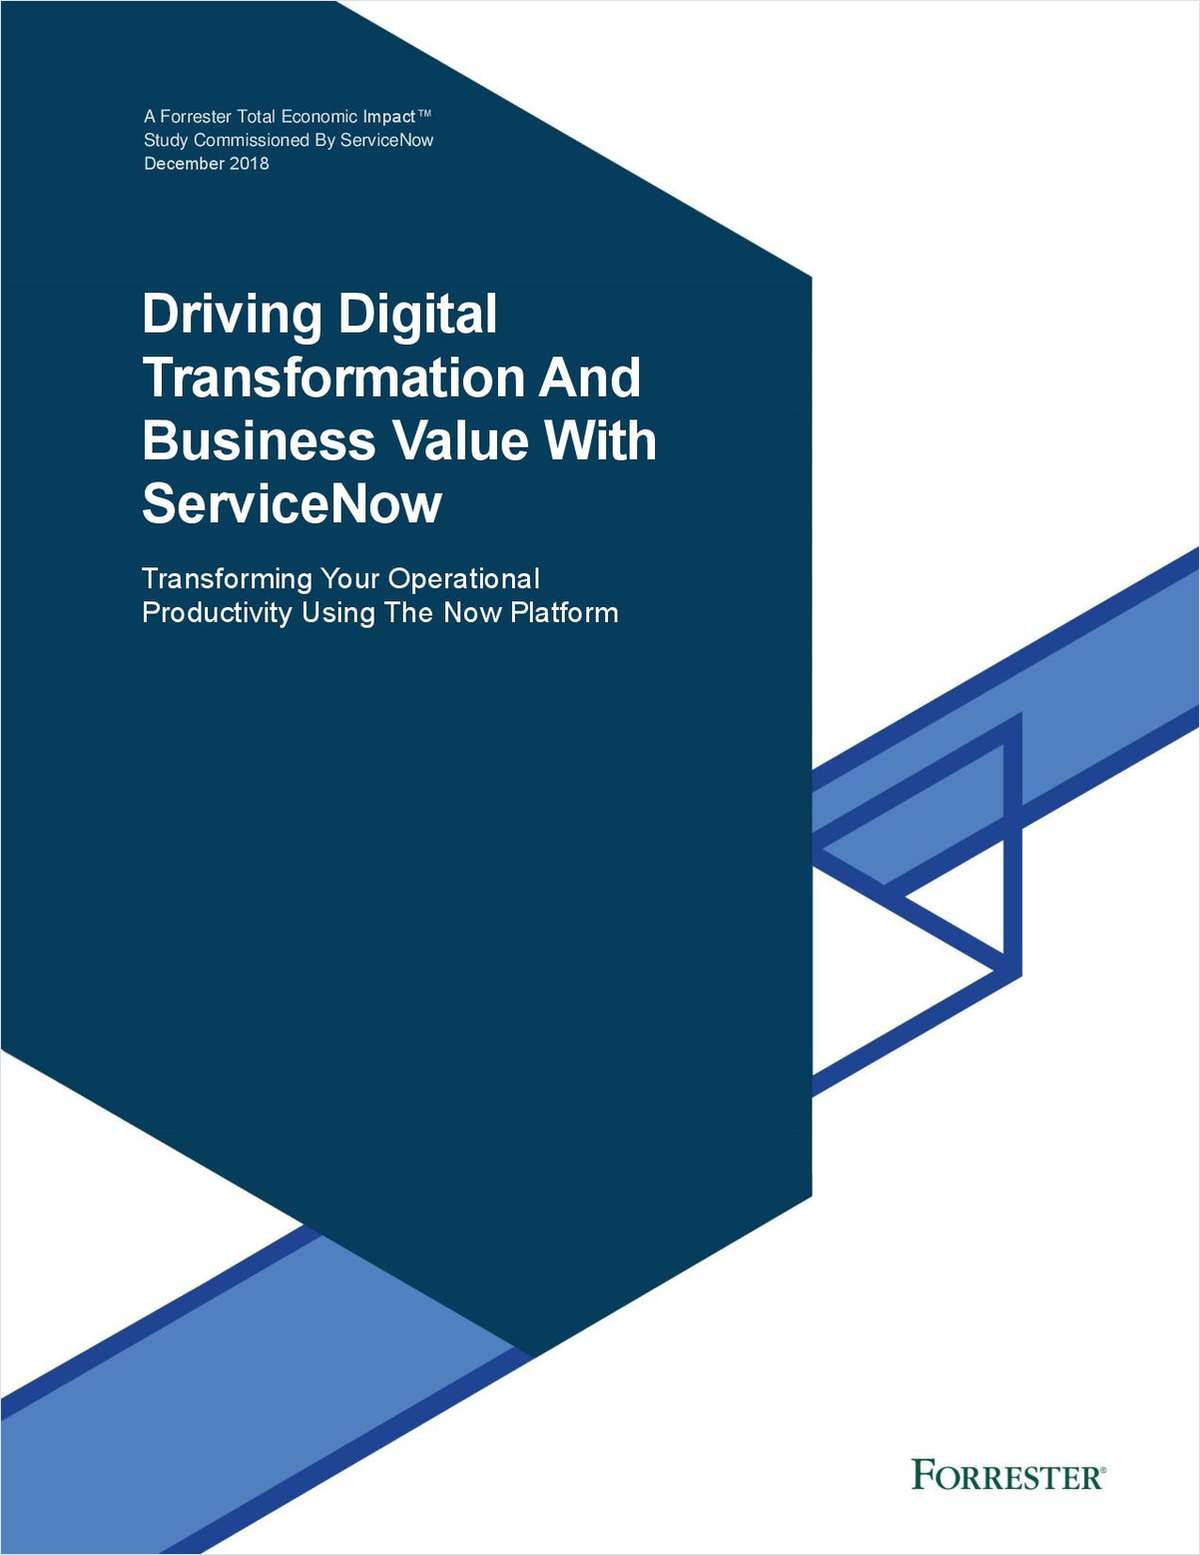 Forrester TEI: Driving Digital Transformation Business Value With ServiceNow